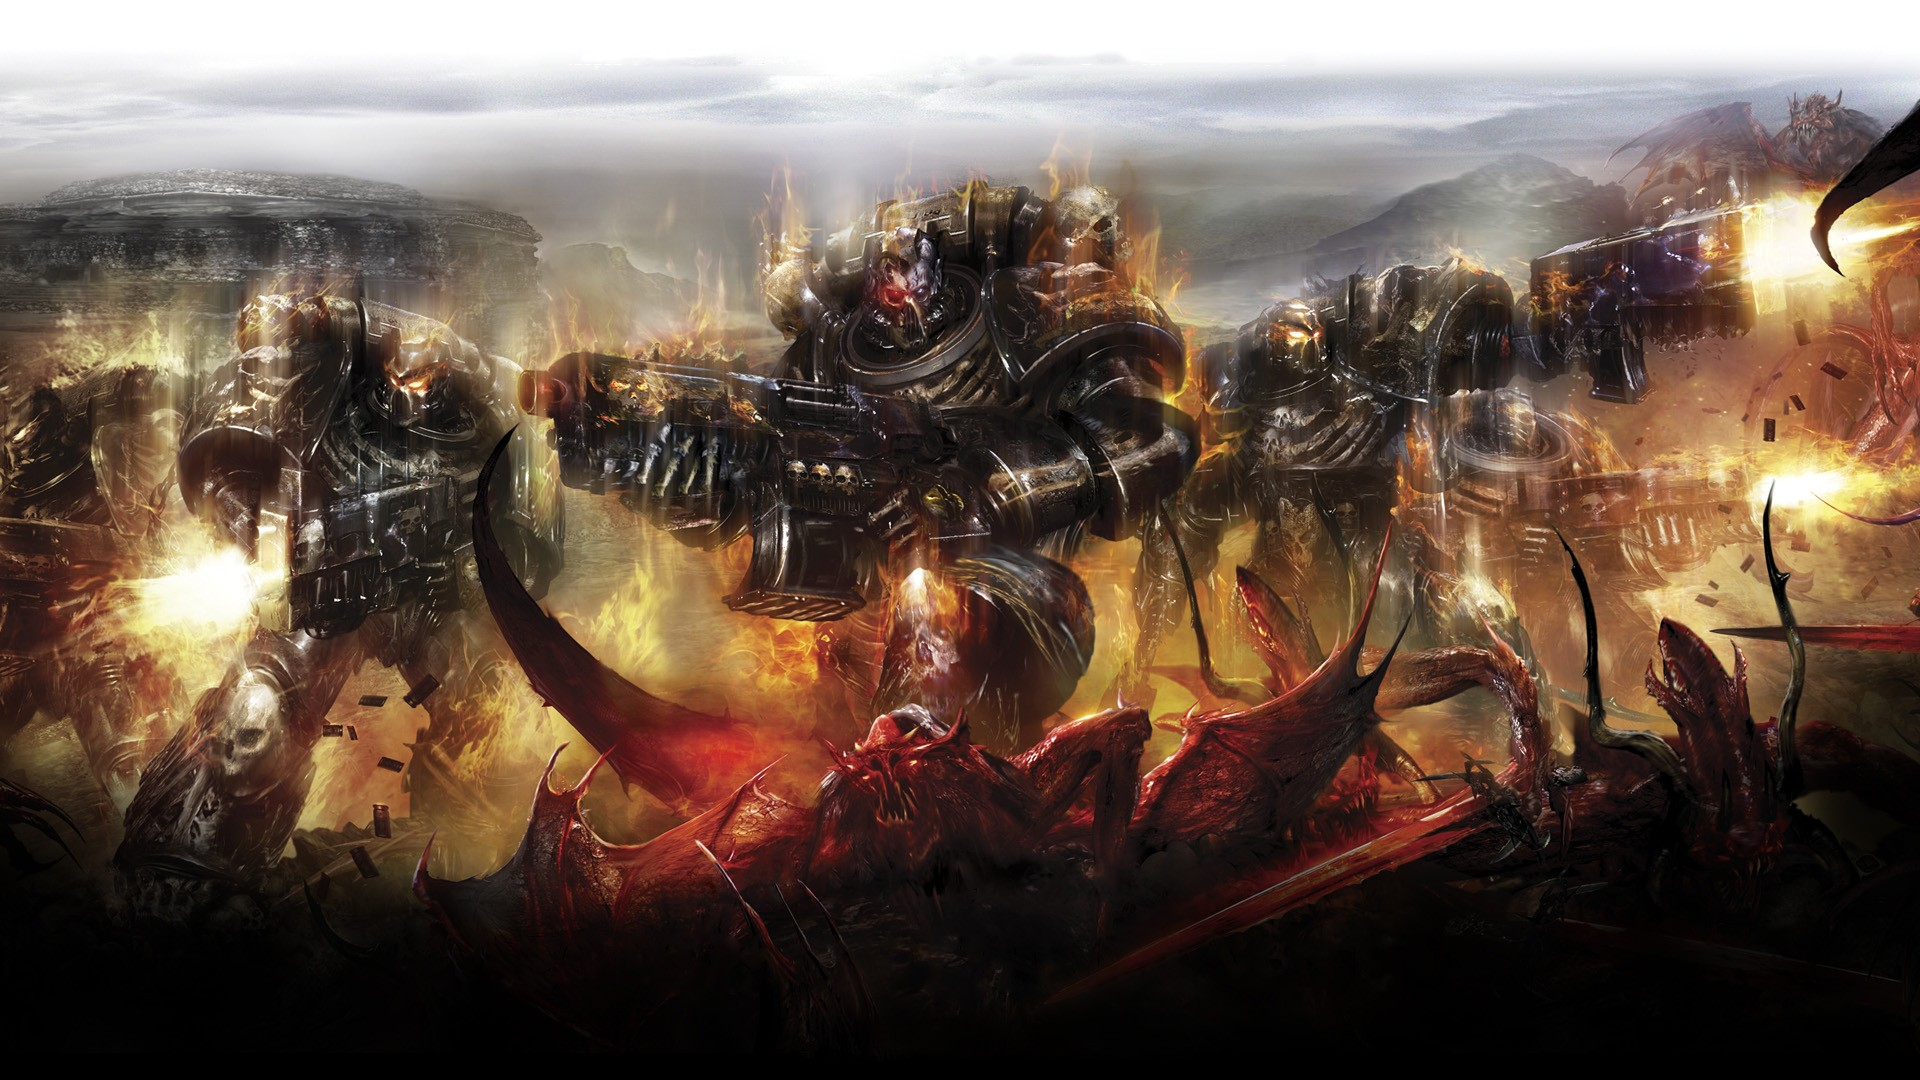 40k chaos space marines wallpaperjpg 1920x1080